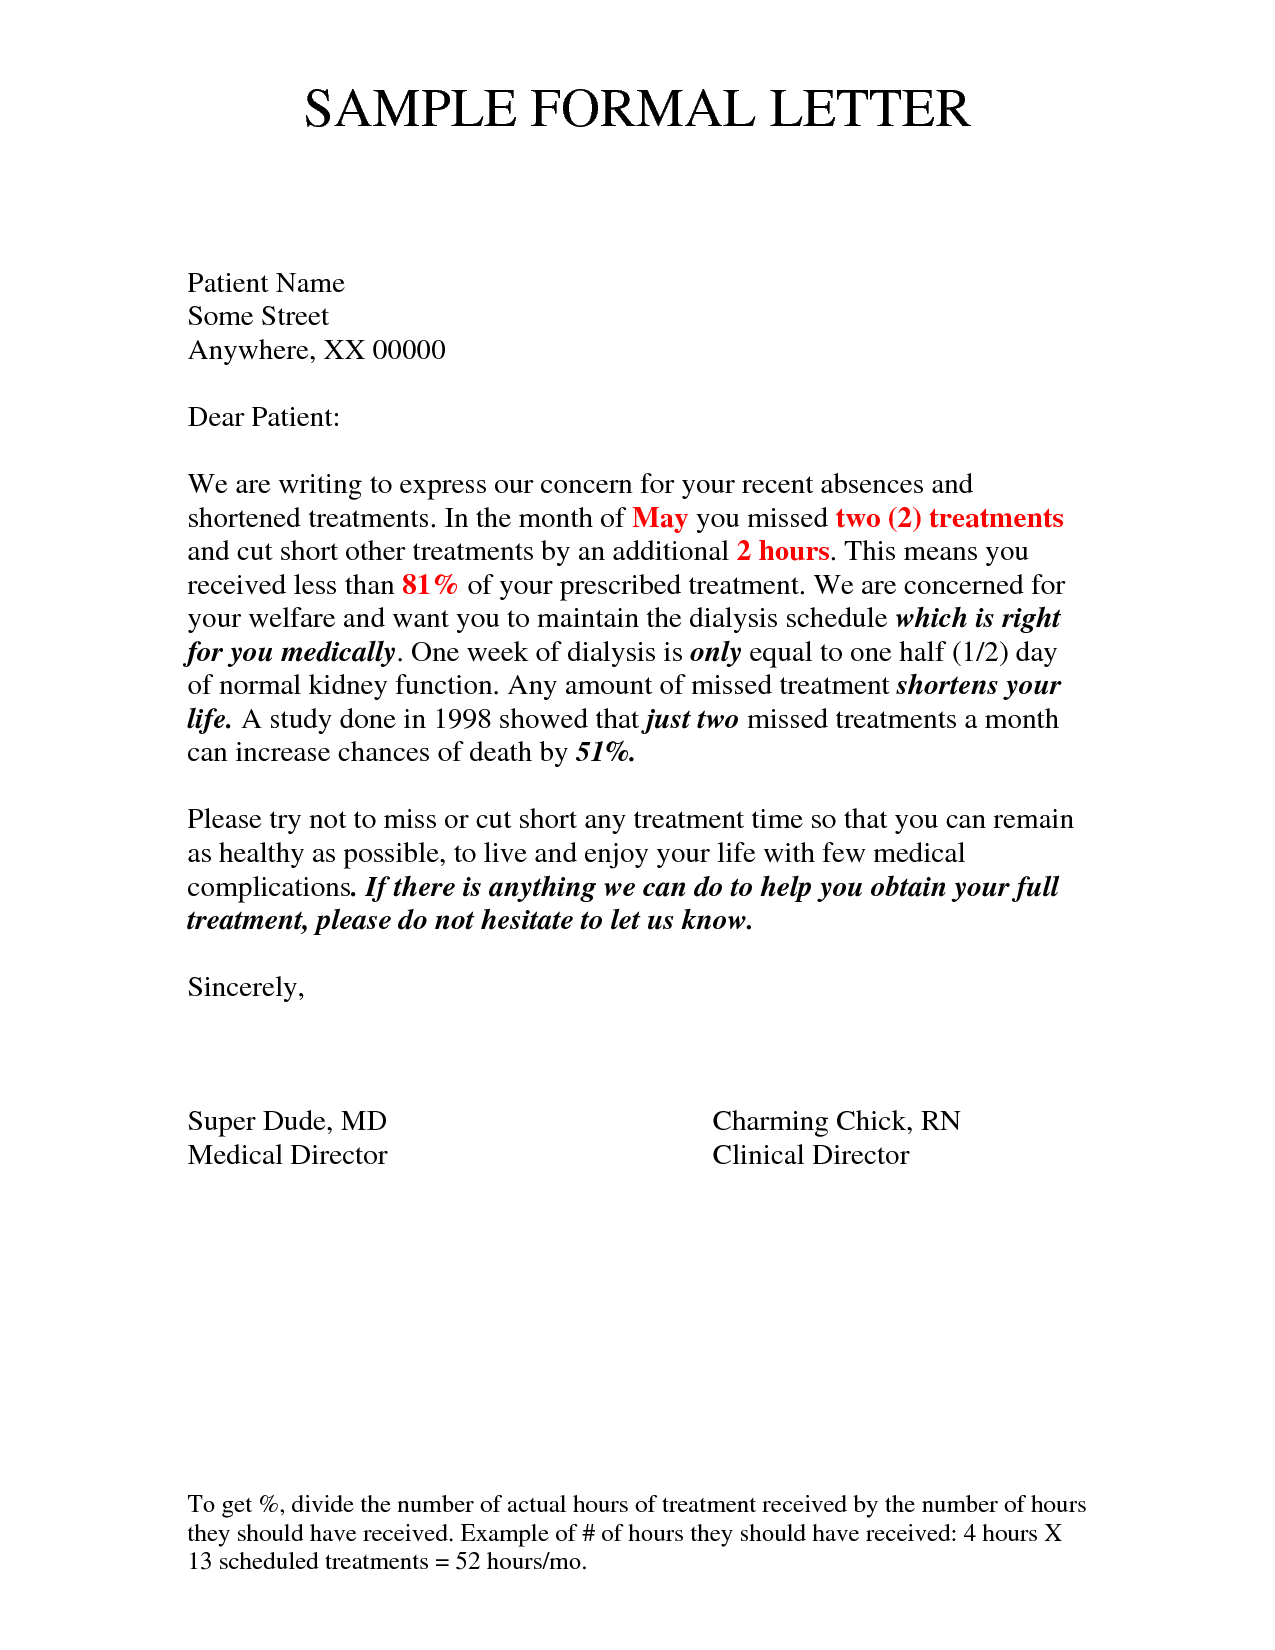 Formal Letter Example | formal letter template